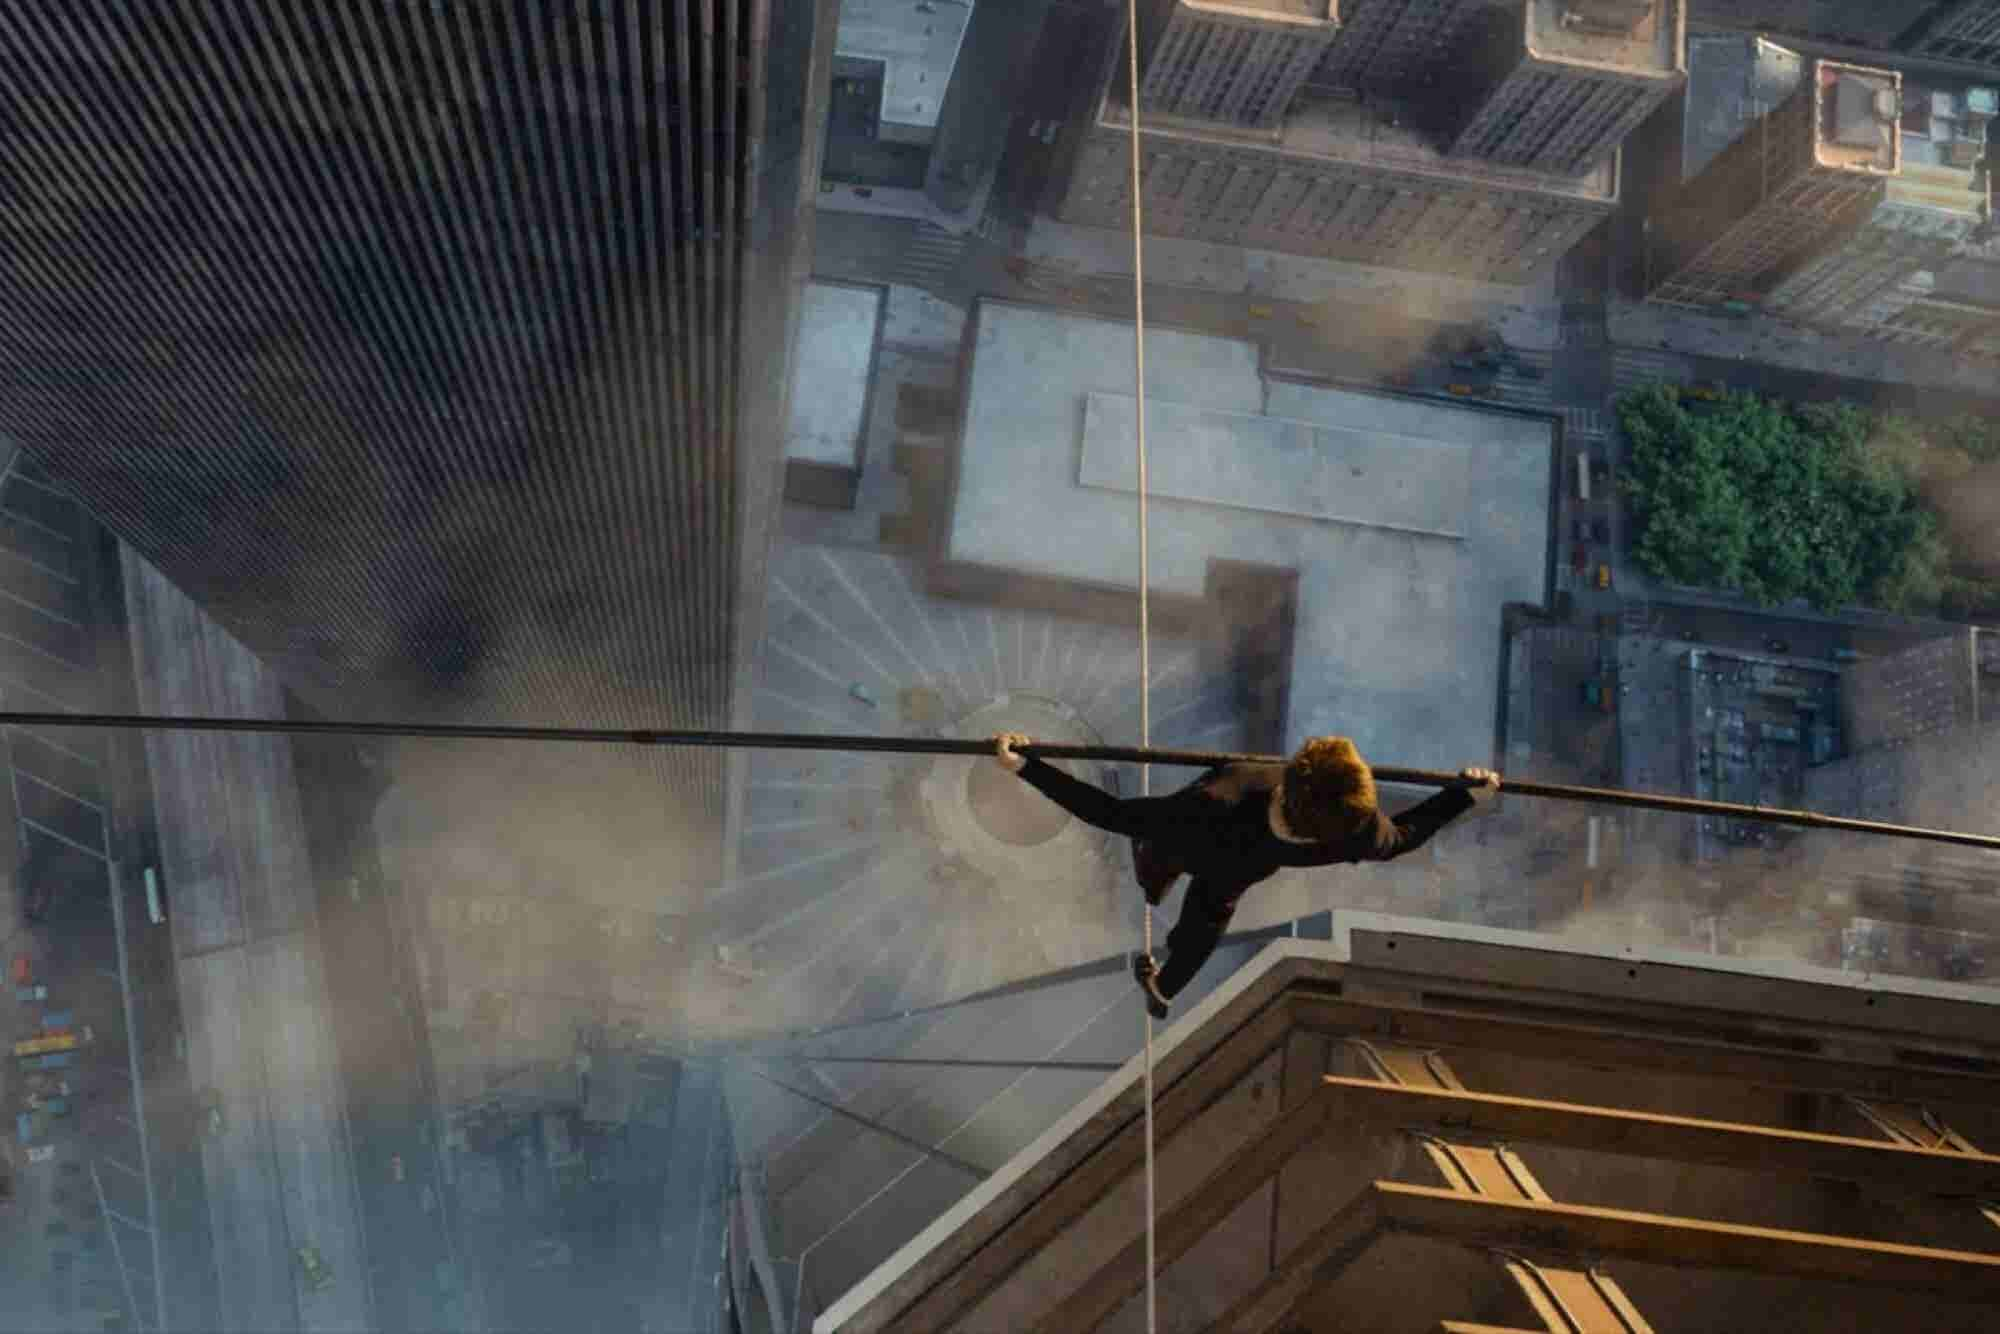 #10 Entrepreneurial Lessons From Movie 'The Walk'